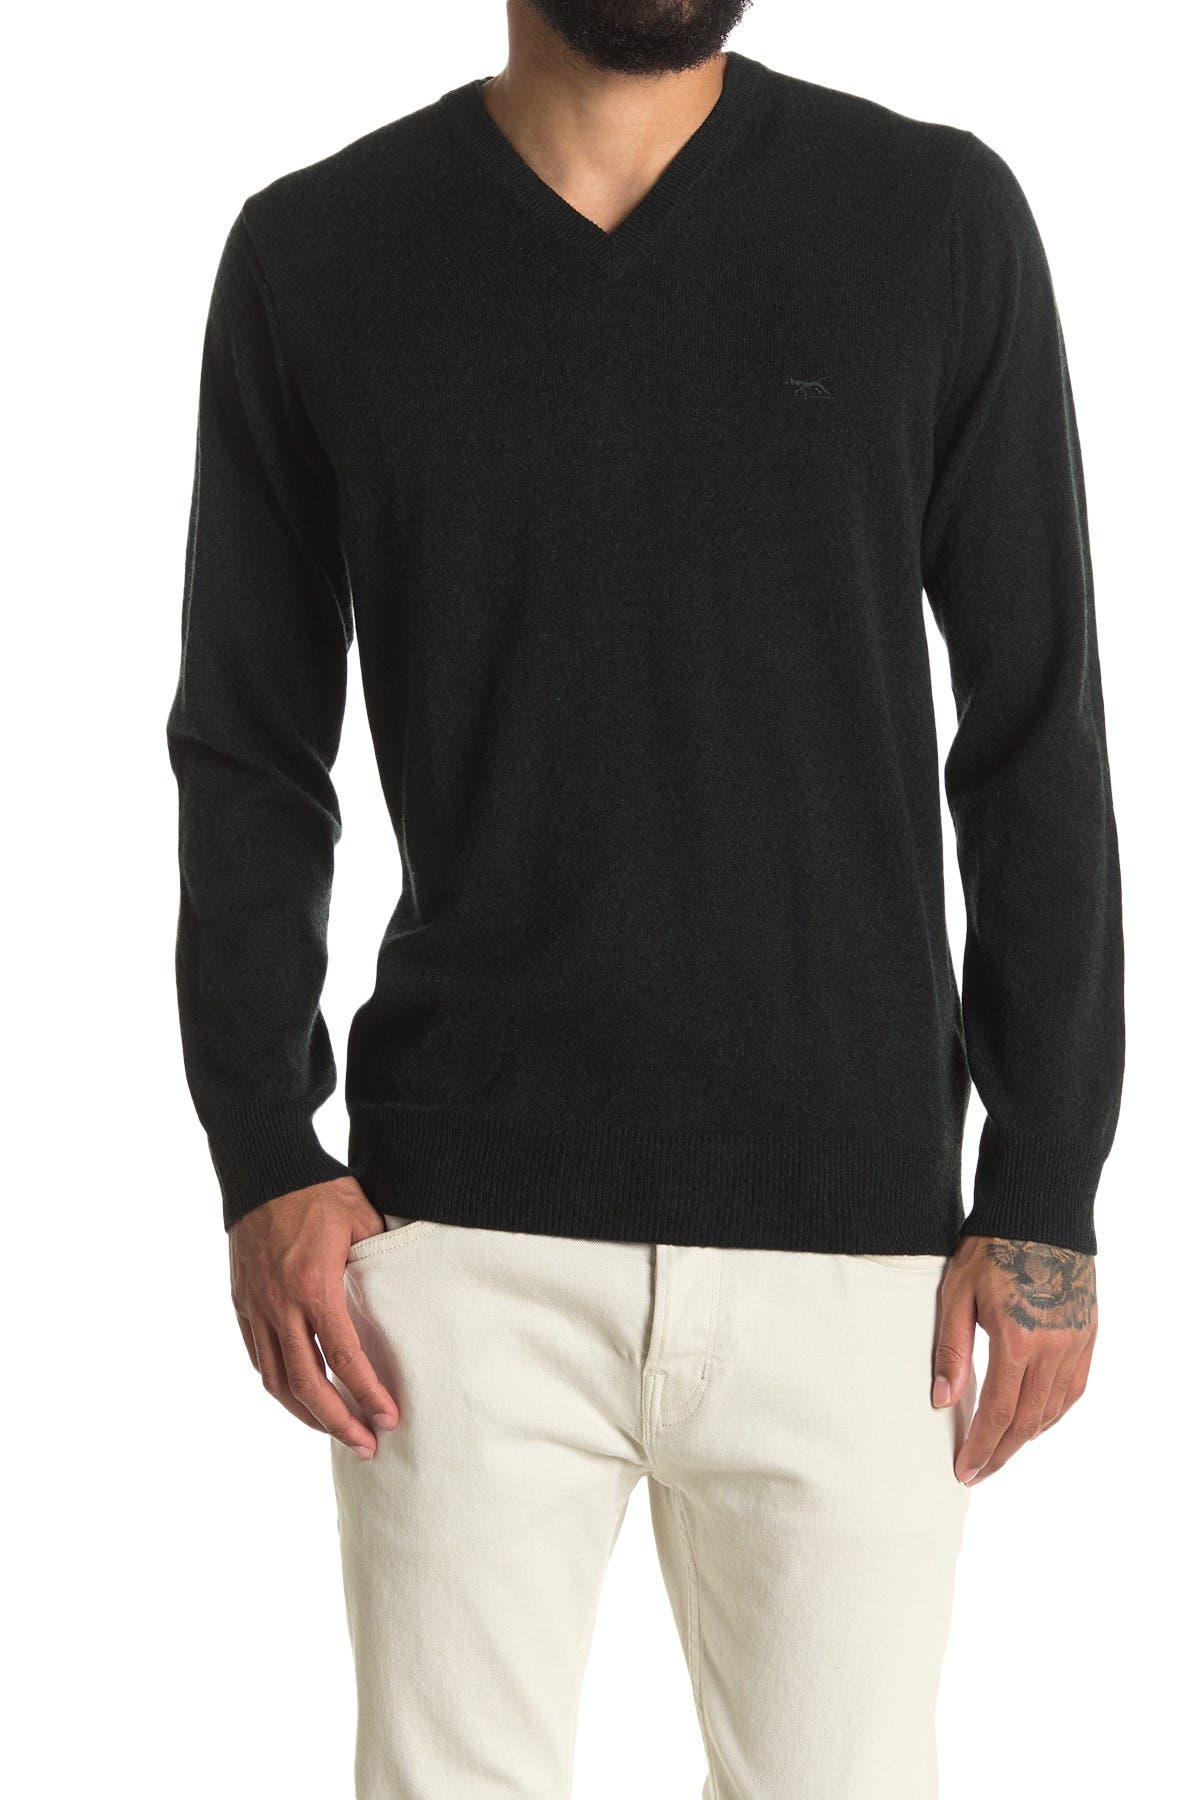 Image of RODD AND GUNN Inchbonnie V-Neck Pullover Sweater